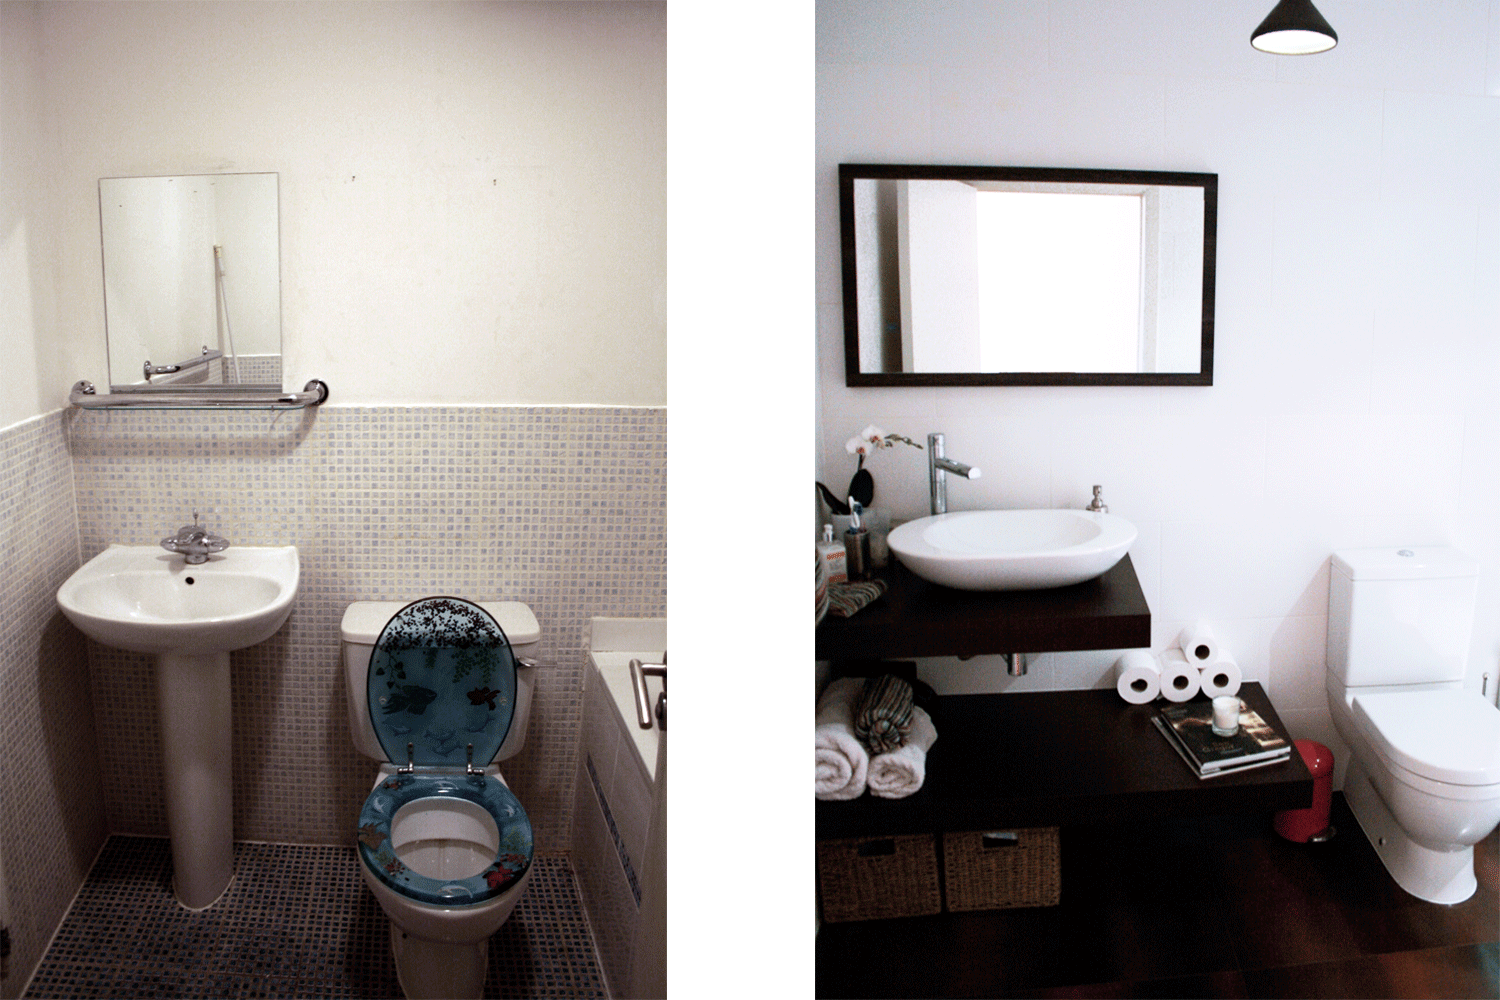 9-Cassidy-Hughes-Interior-Design---Warehouse-Bathroom-before-and-after